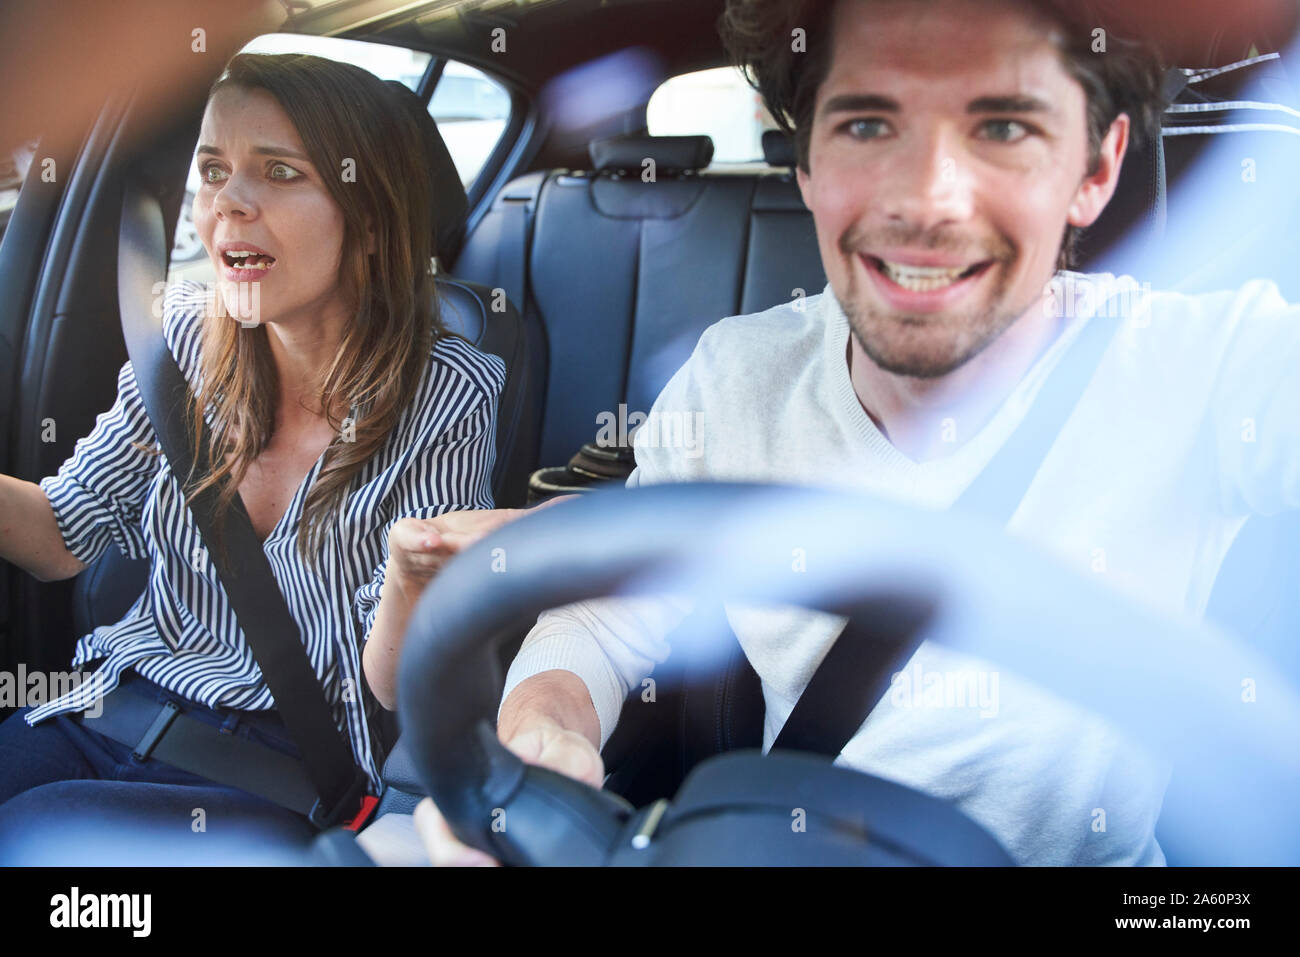 Shocked couple in a car with man driving Stock Photo